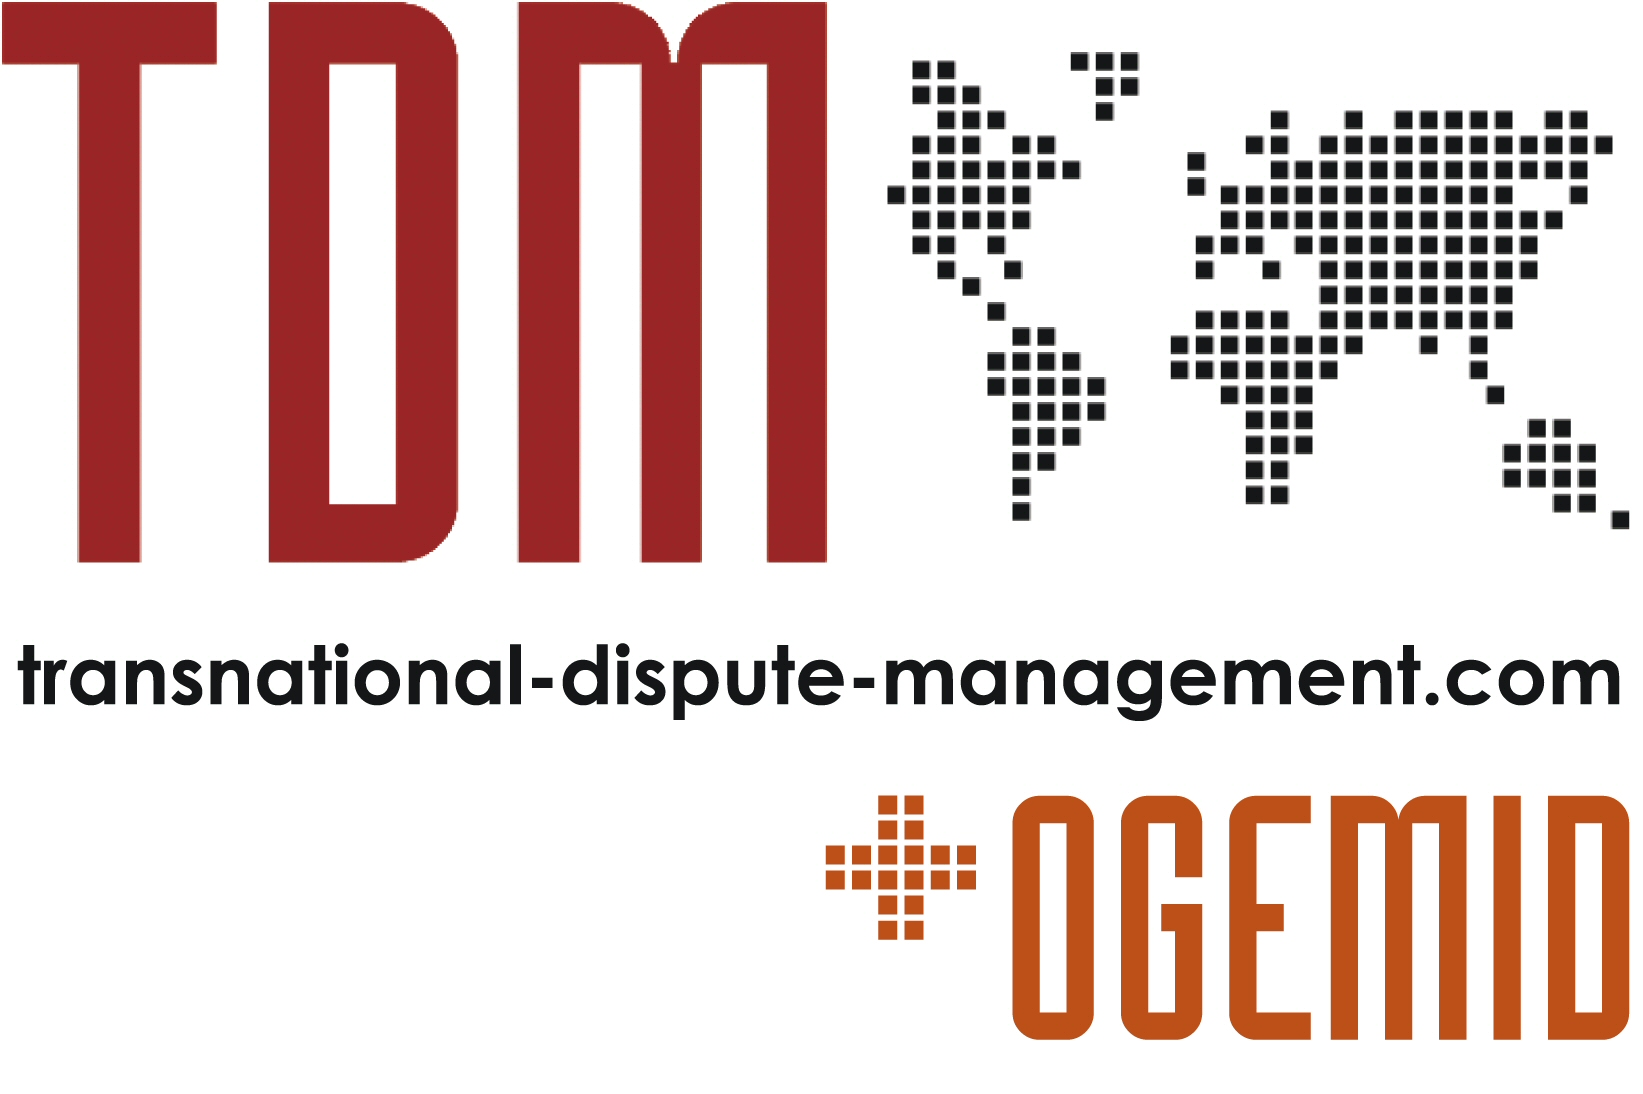 Transnational-dispute-management.com logo